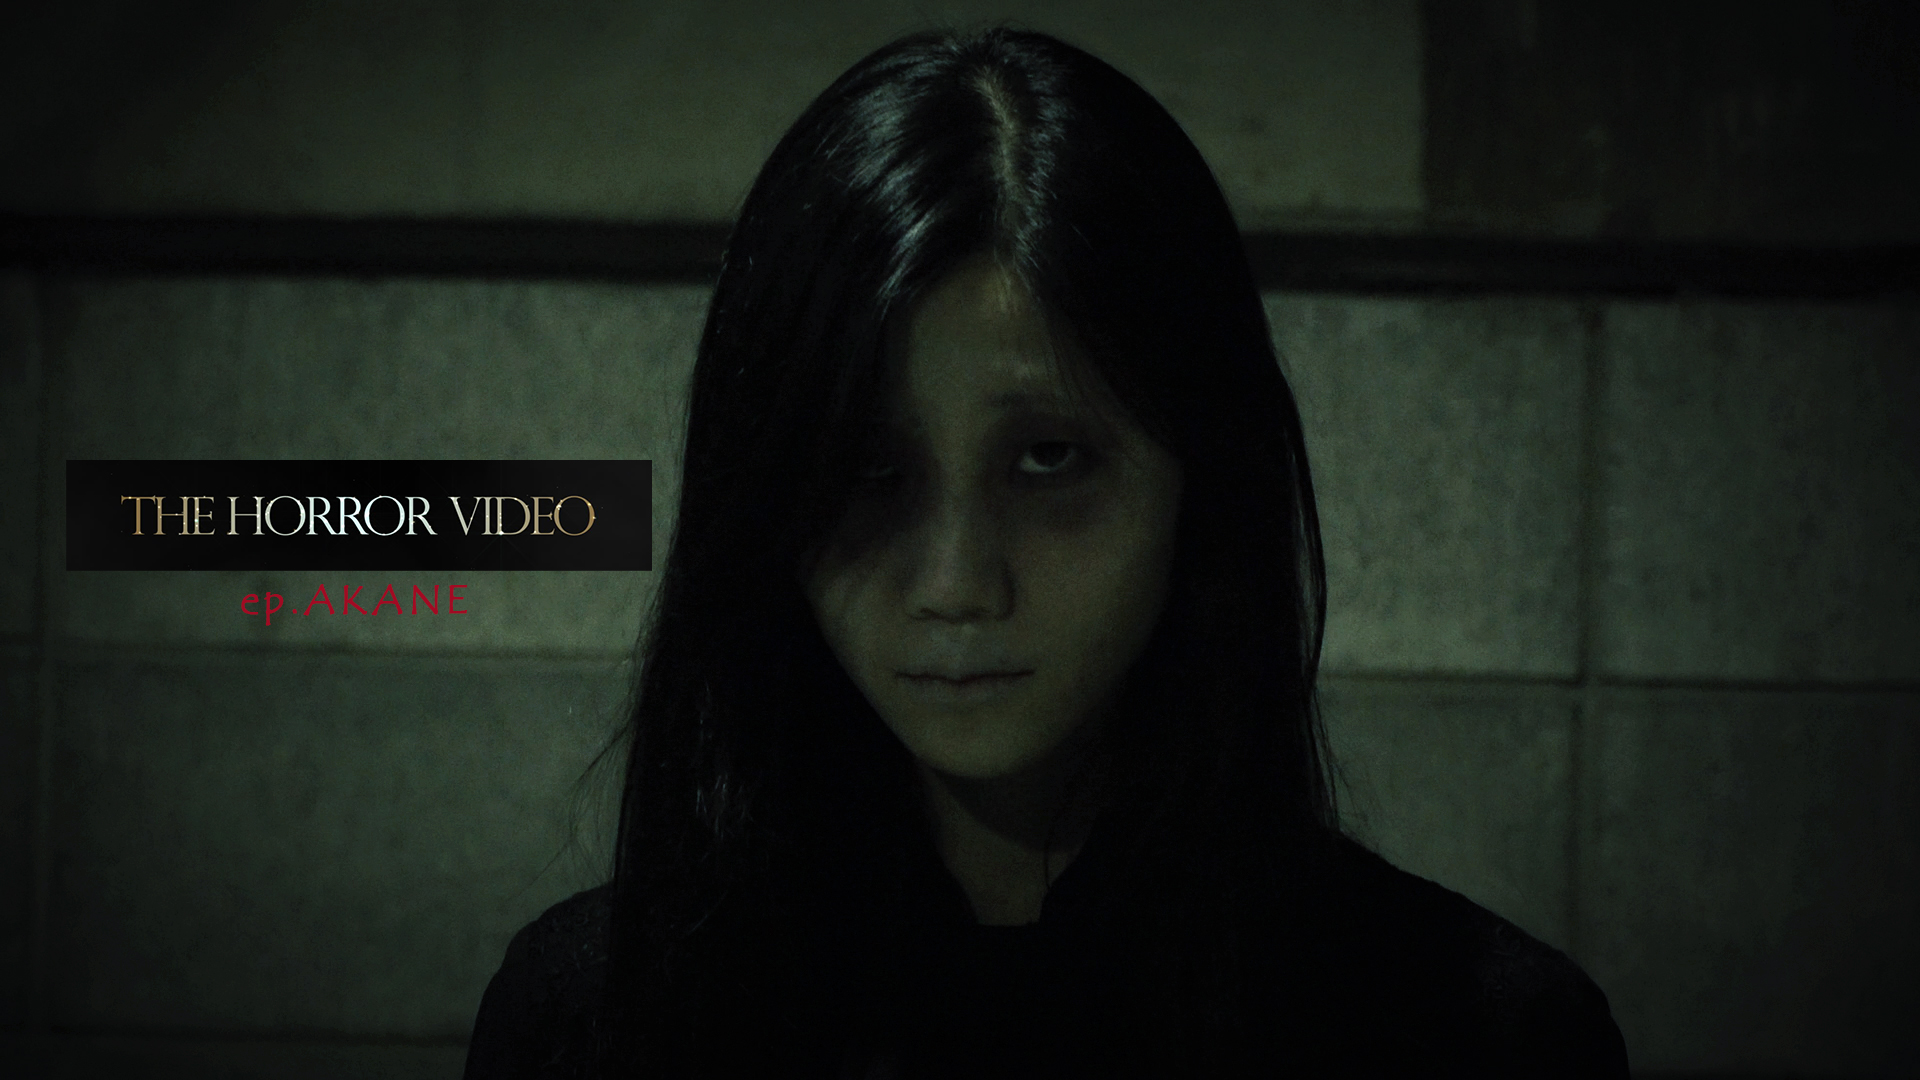 THE HORROR VIDEO Season1 「AKANE」ep.5